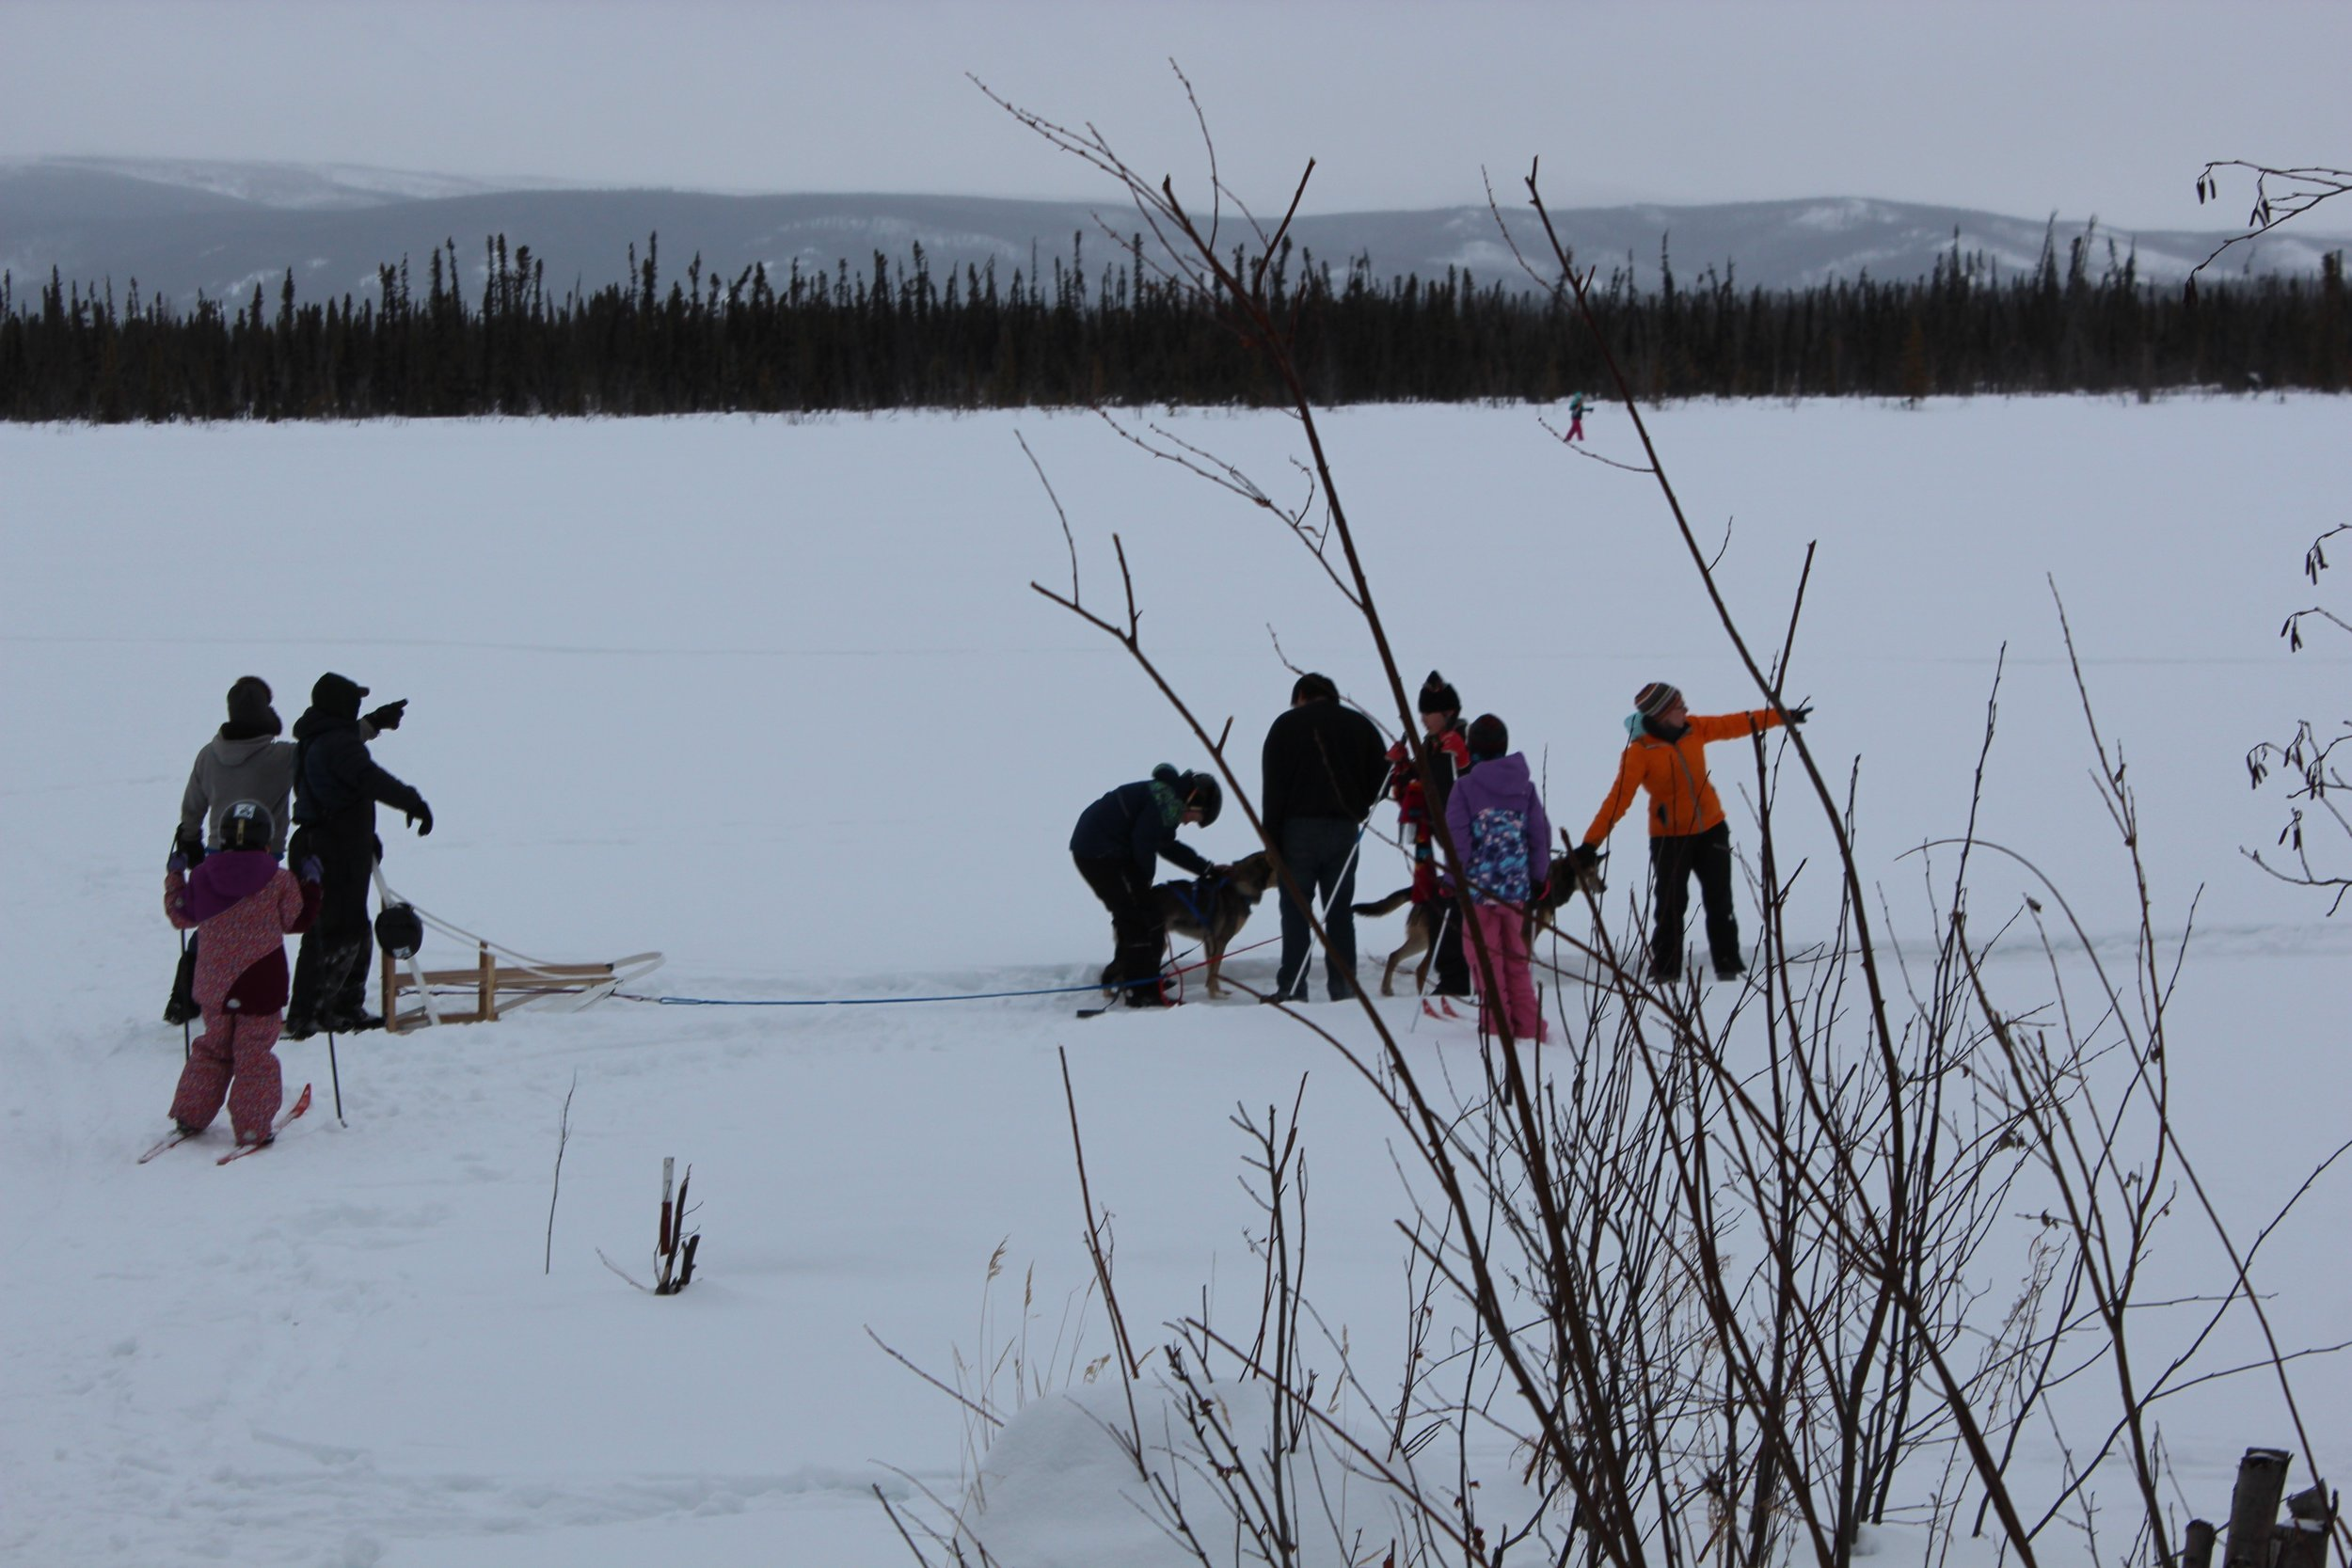 Group on lake with dogs.